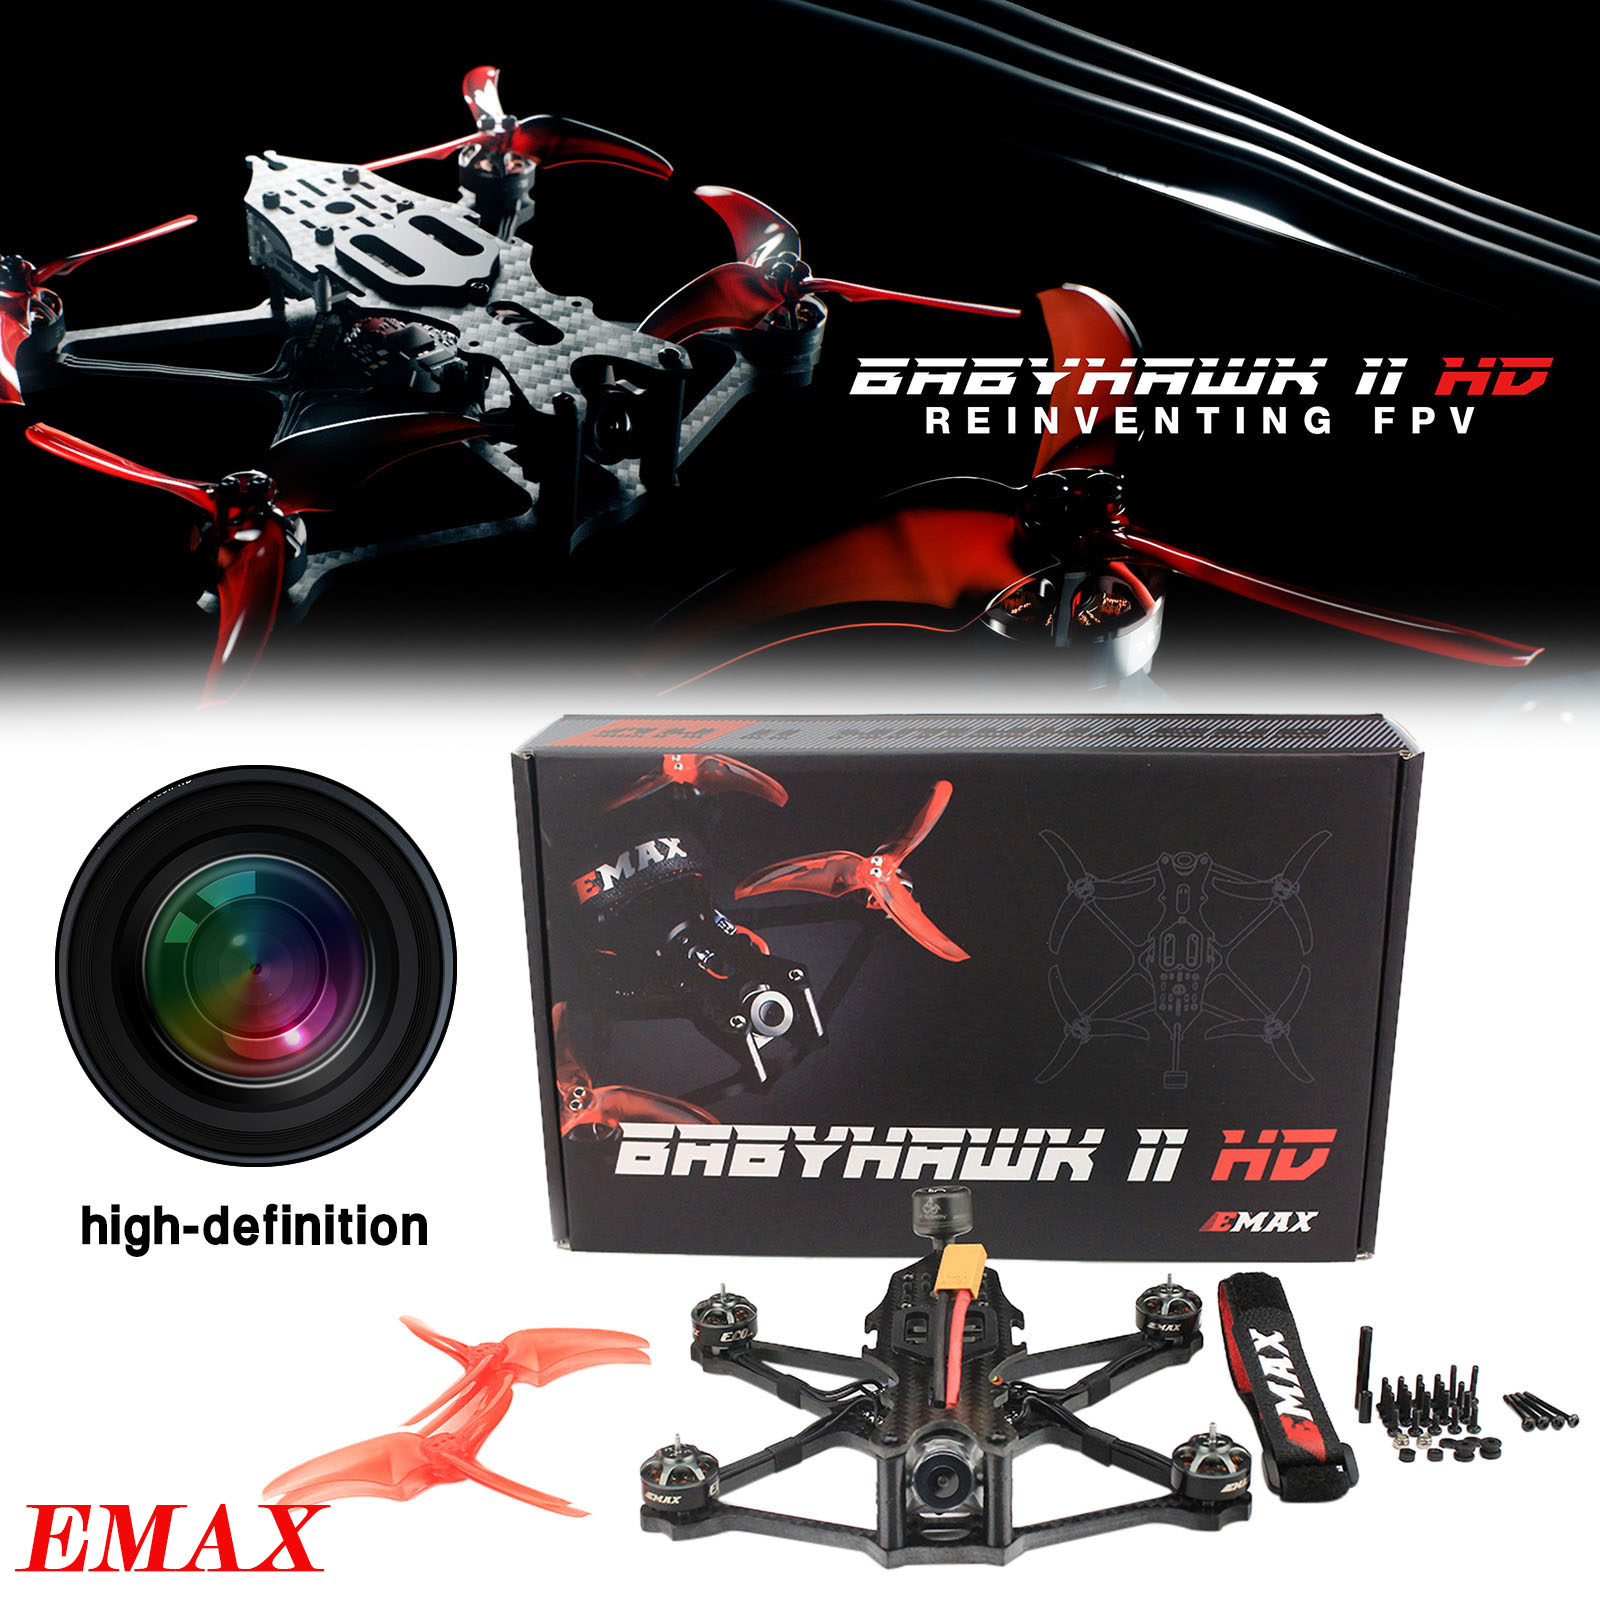 EMAX Remote Control Hd Camera Drone 155mm F4 4s Fpv Racing Drone Babyhawk Ii Hd D8/tbs/pnp Model Airplane Children's Toy Gift #K